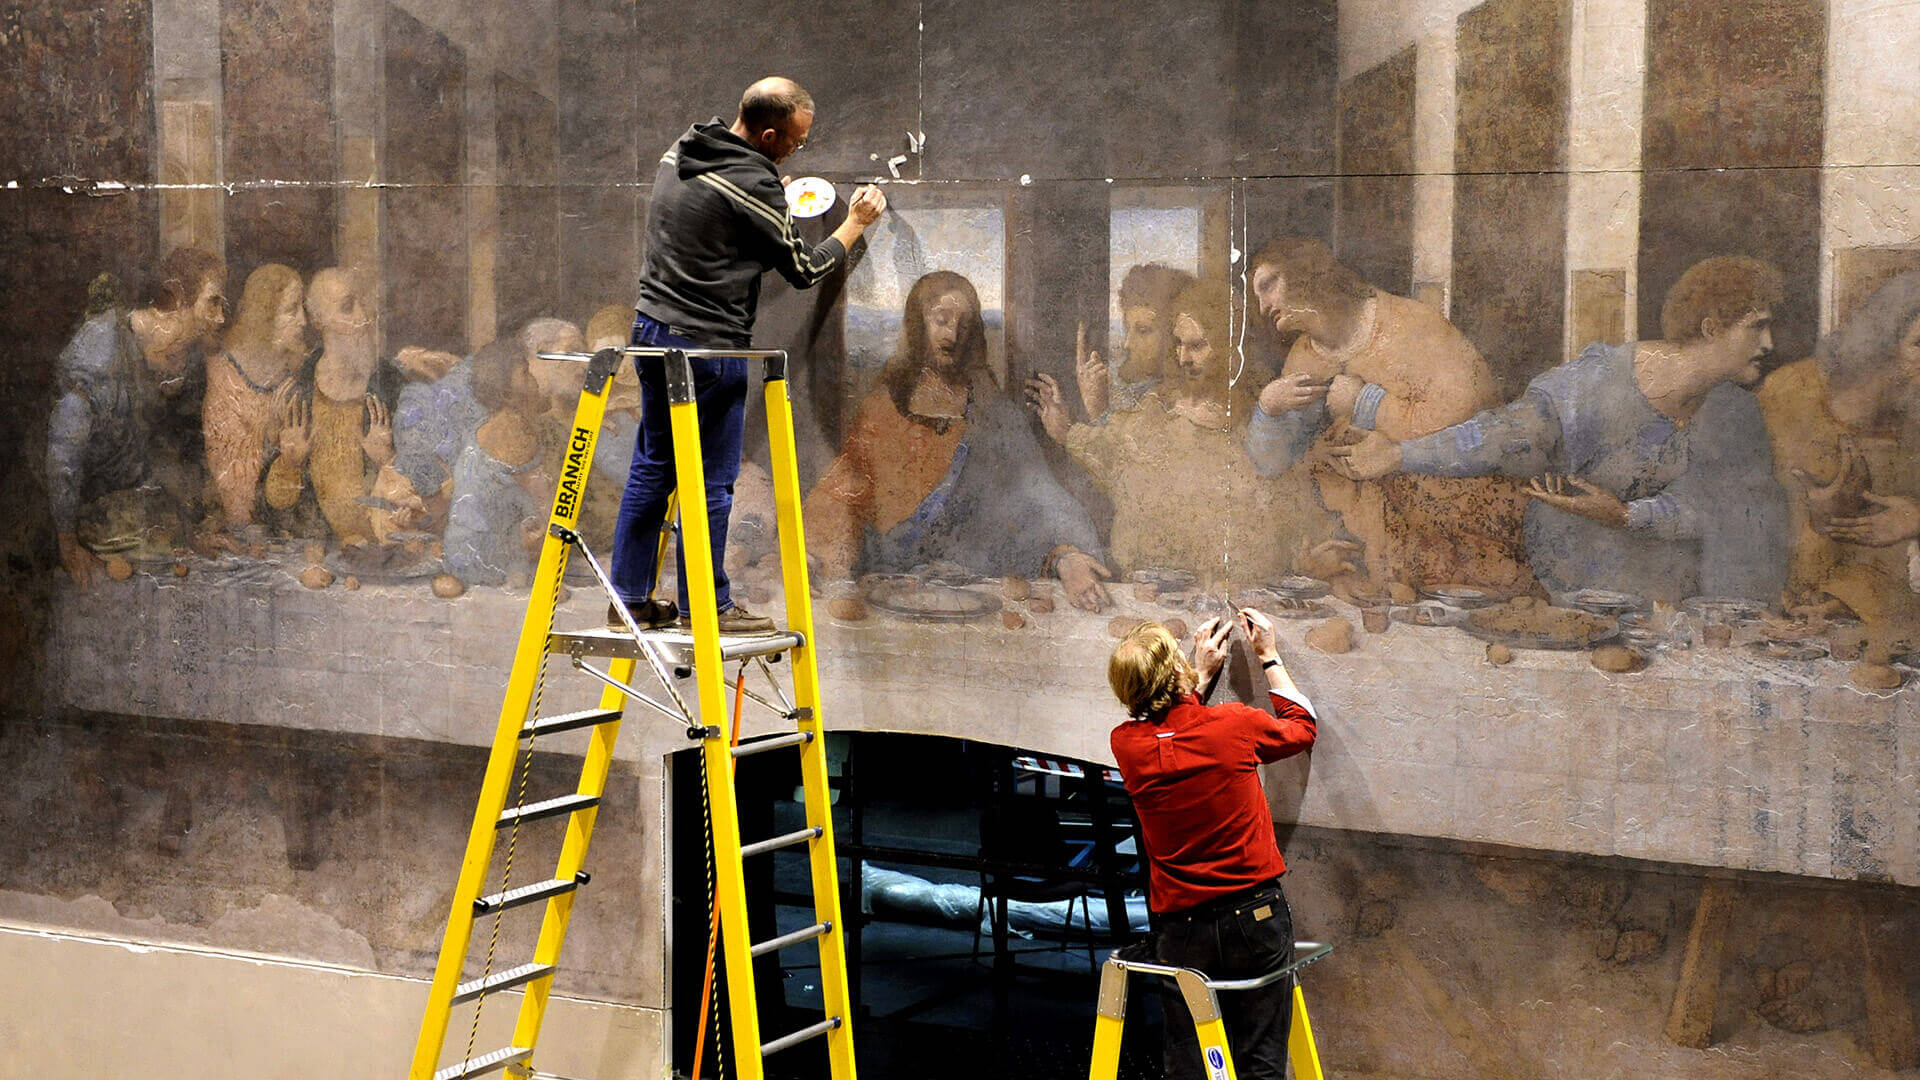 Two people on Branach's fibreglass WorkMaster 450mm Safety Step Platform ladders touching up a painting of The Last Supper.